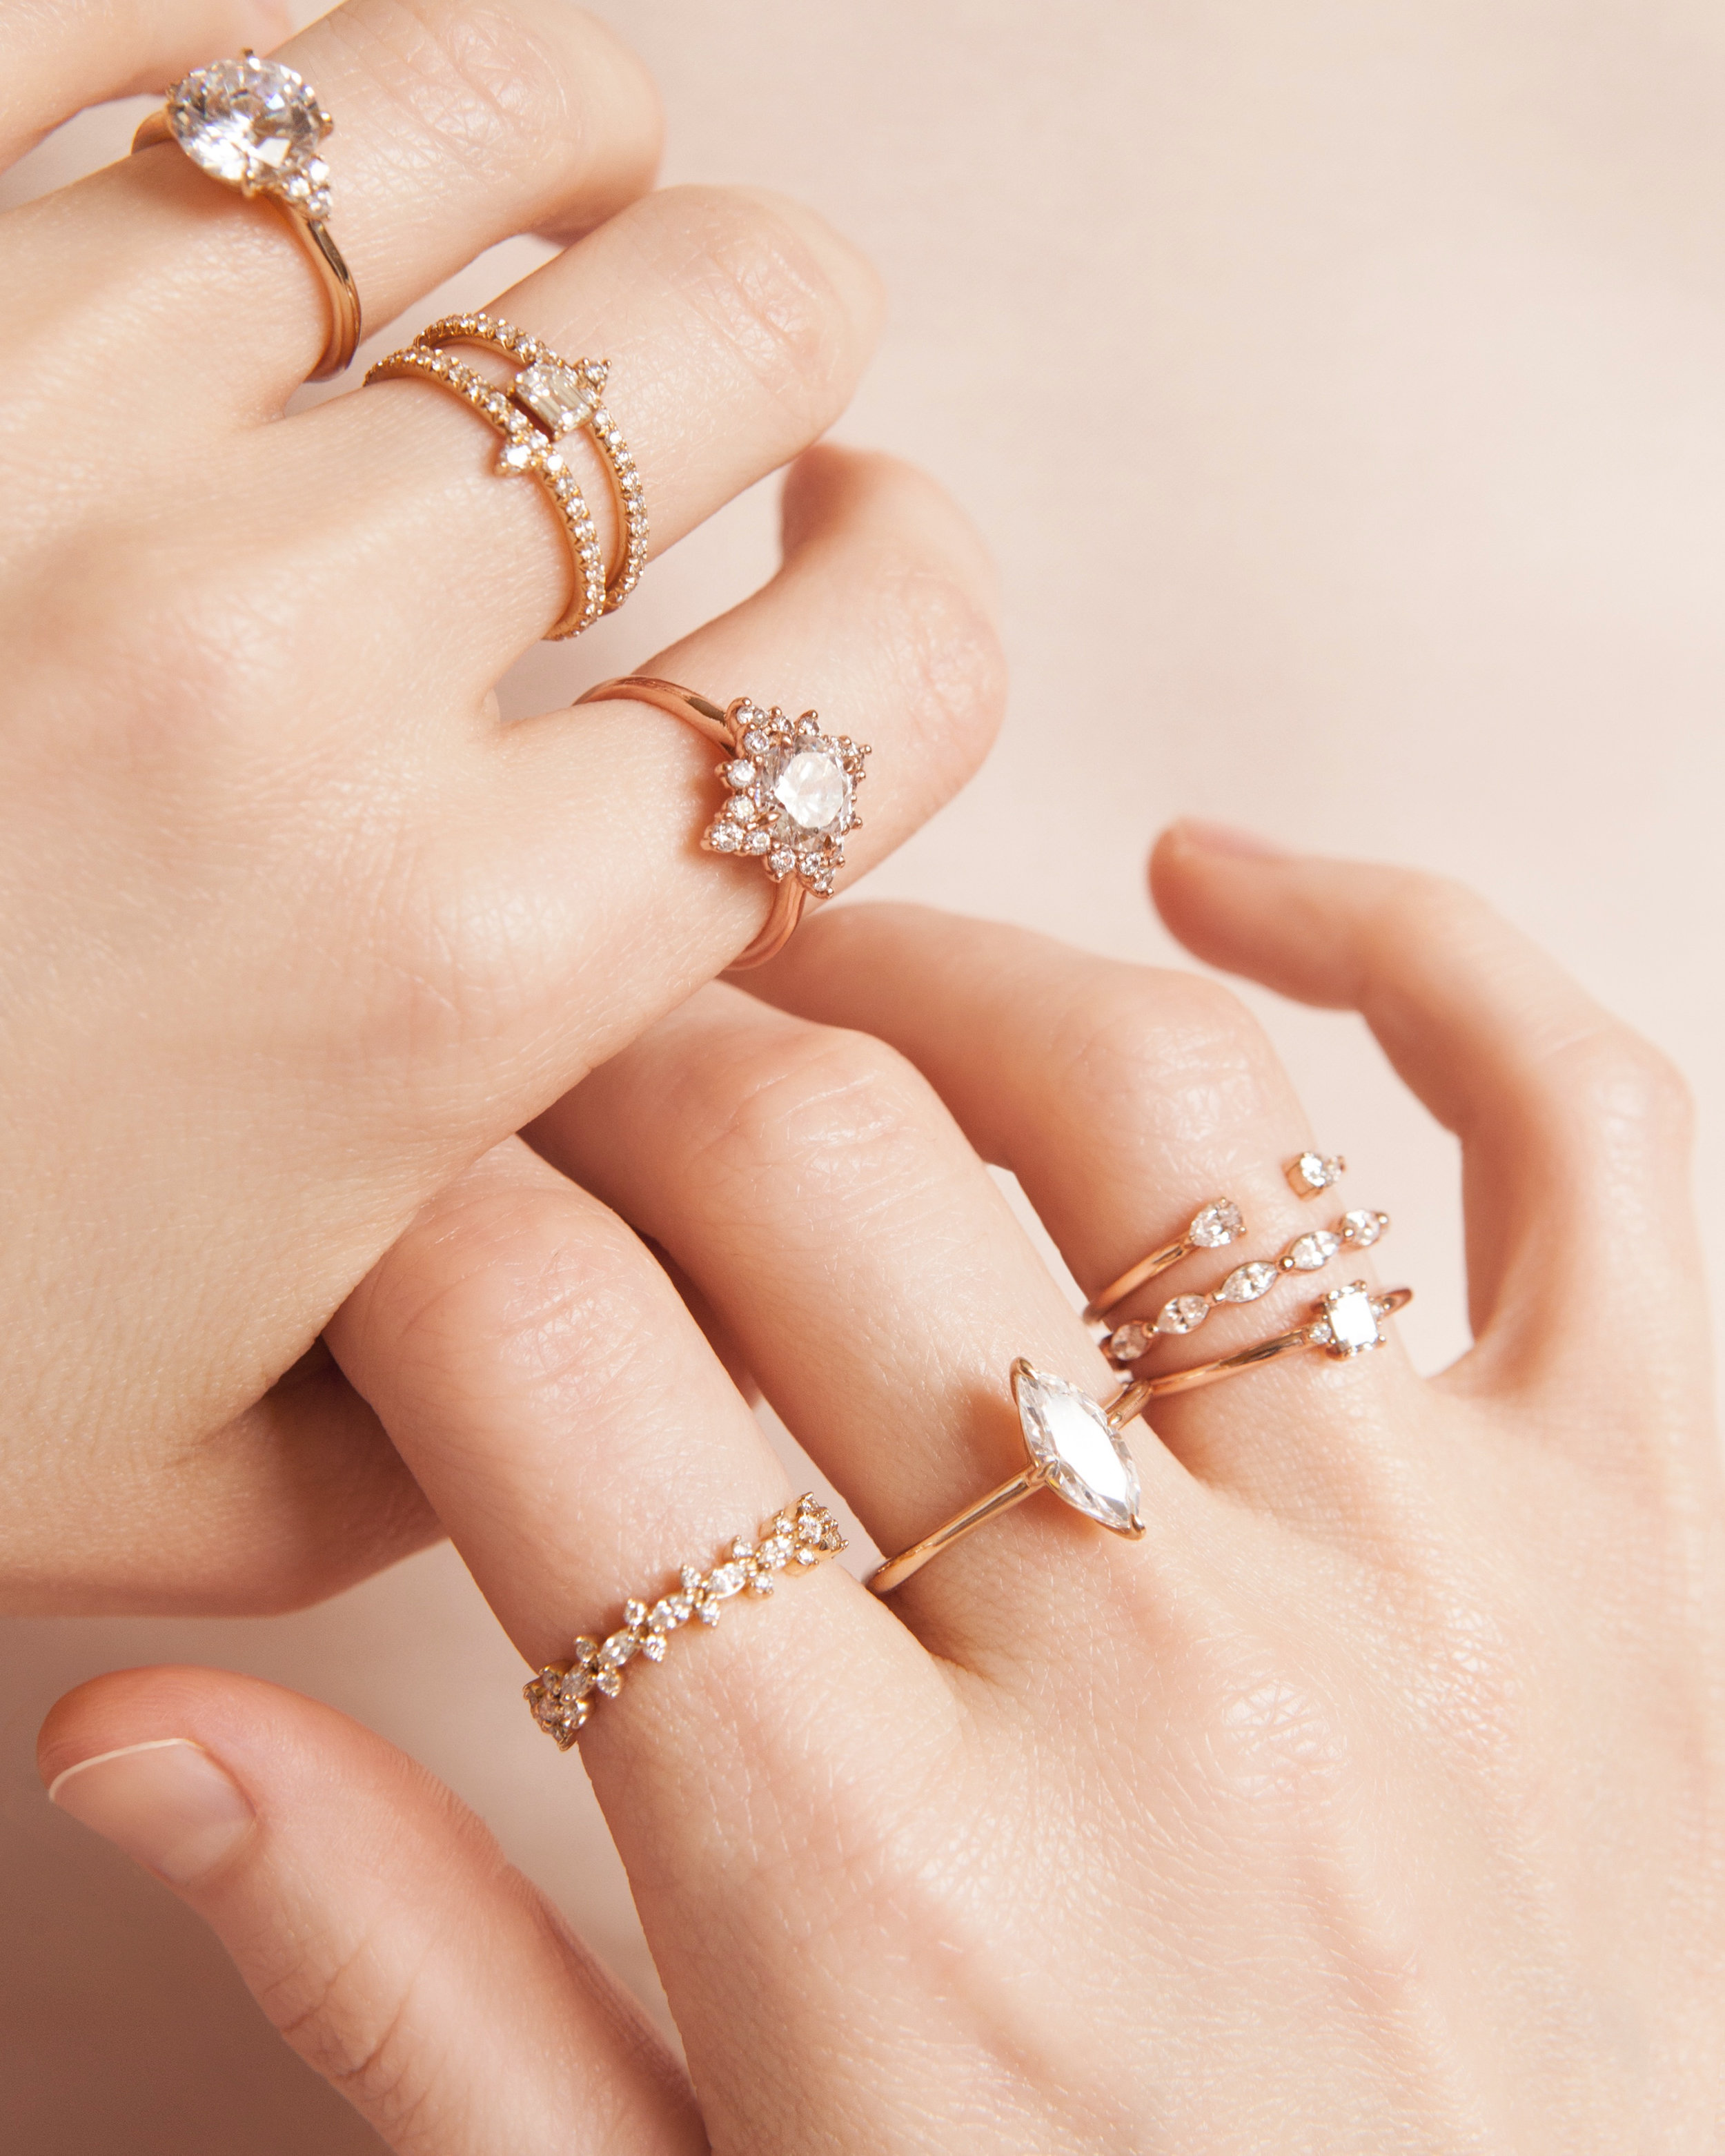 Caring For Your Susie Saltzman Jewelry - Insure your ring immediately upon receiving it.Have your ring checked by a trusted jeweler every six months.Clean your ring with warm soapy water and a soft toothbrush. Brush with care and don't forget to pull up the sink drain first!Store your ring in the same place every time you take it off.Remove your ring during certain activities, such as cleaning or swimming. Be sure to store it in your safe place!